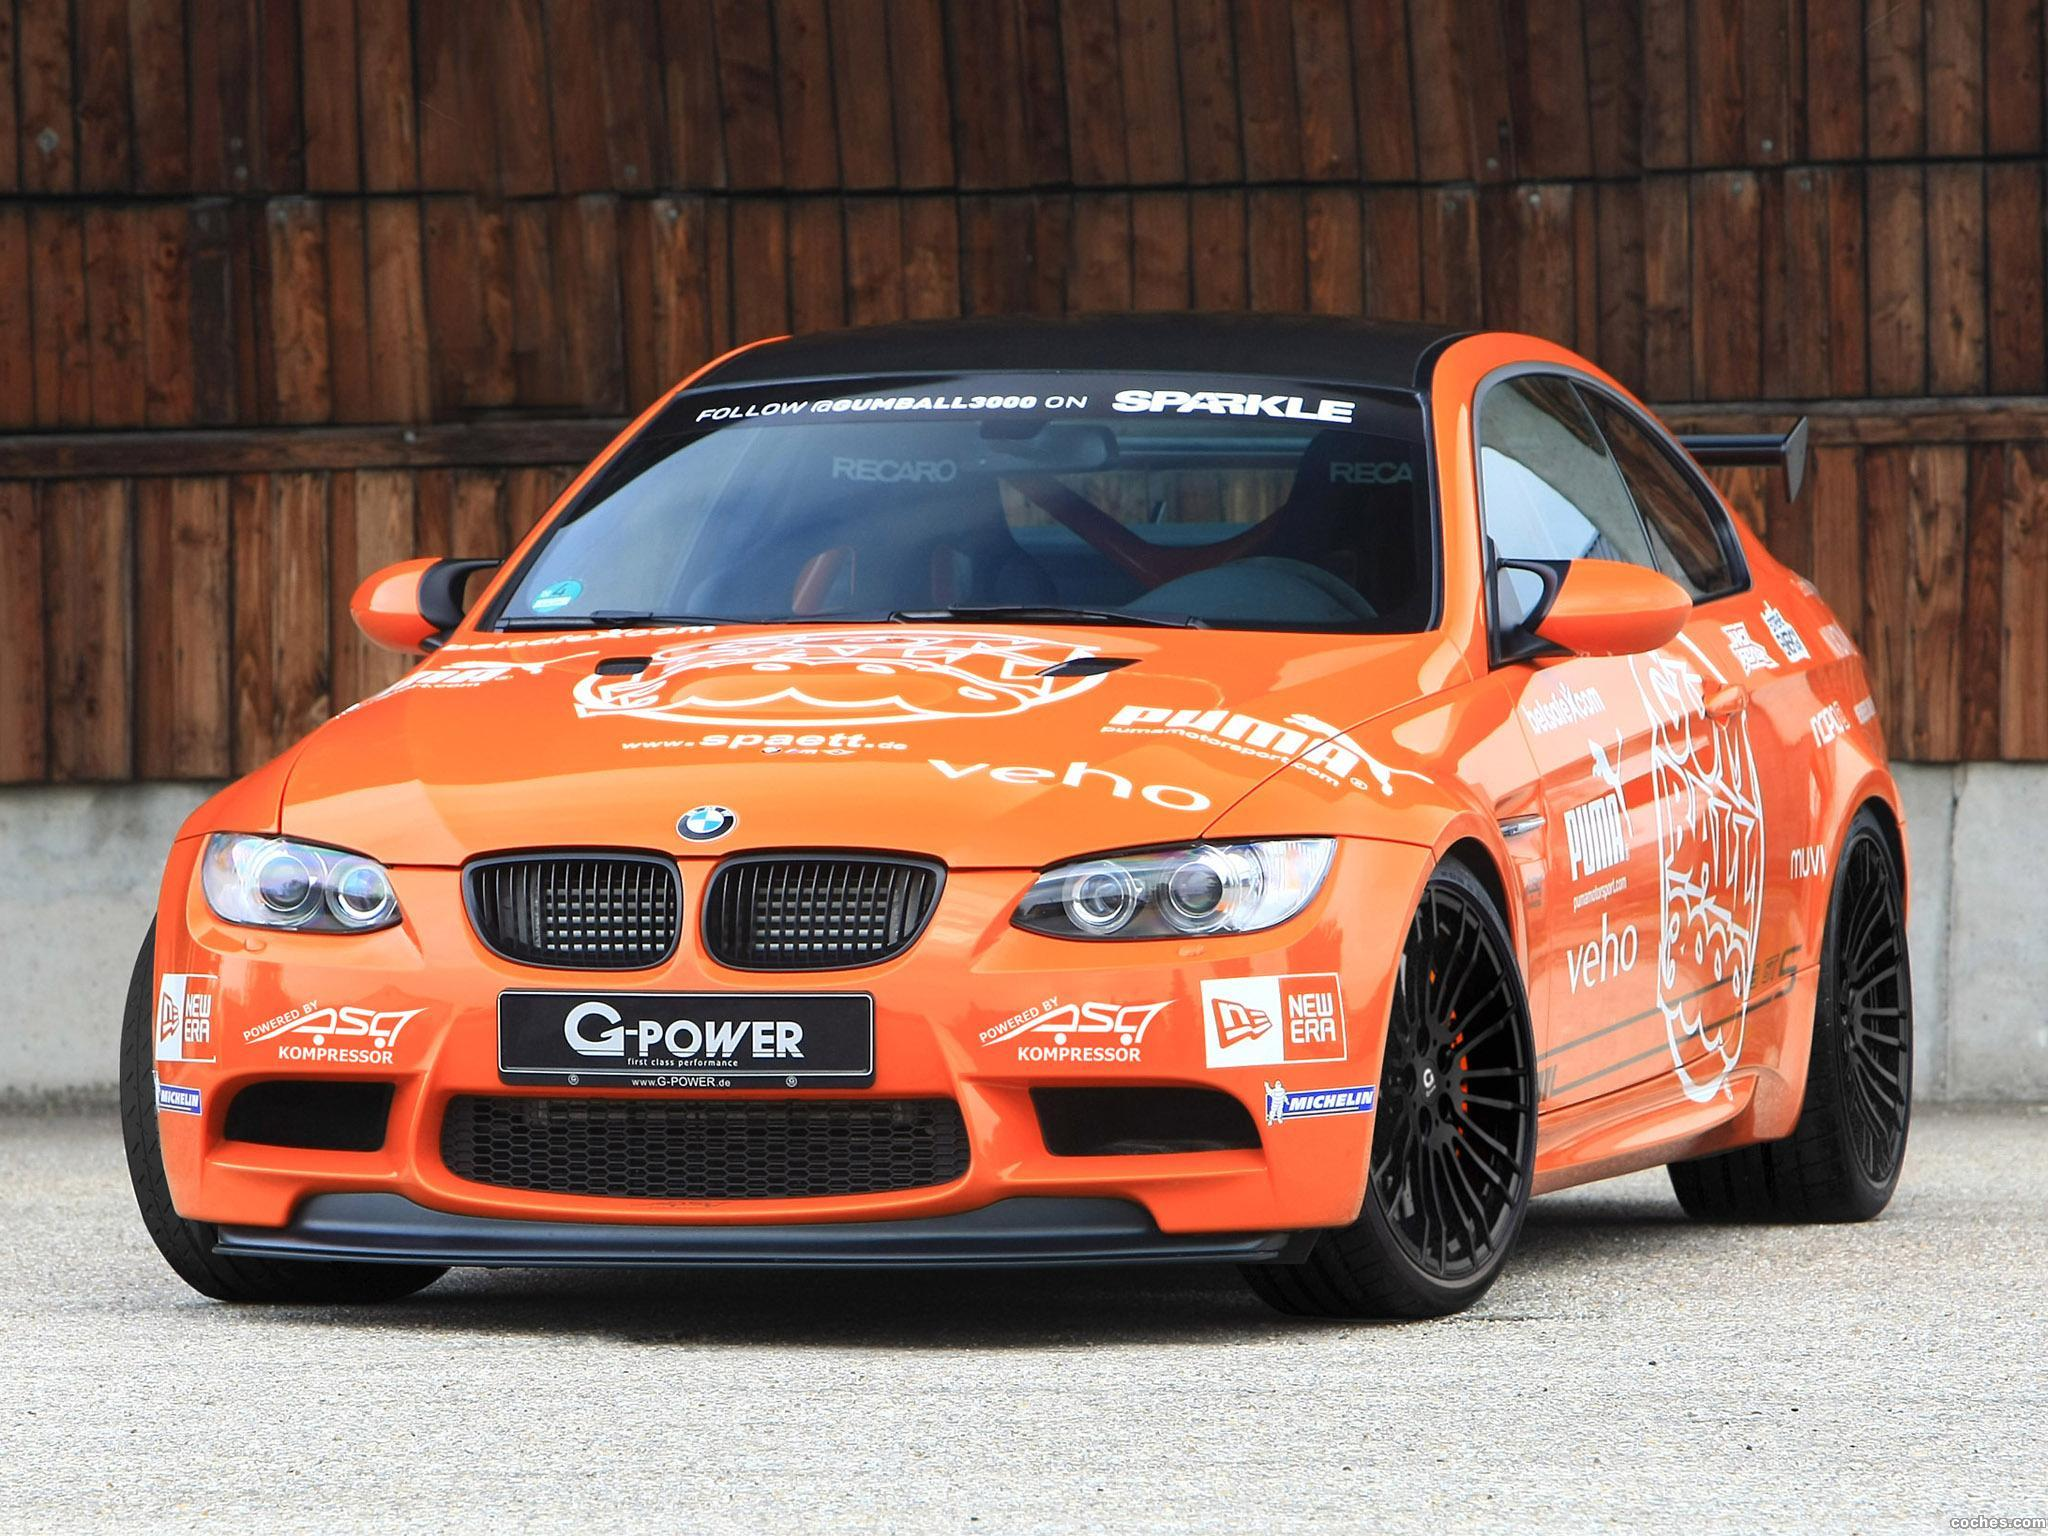 Foto 0 de G Power BMW Serie 3 M3 GTS SK II Sporty Drive TU Super 2013